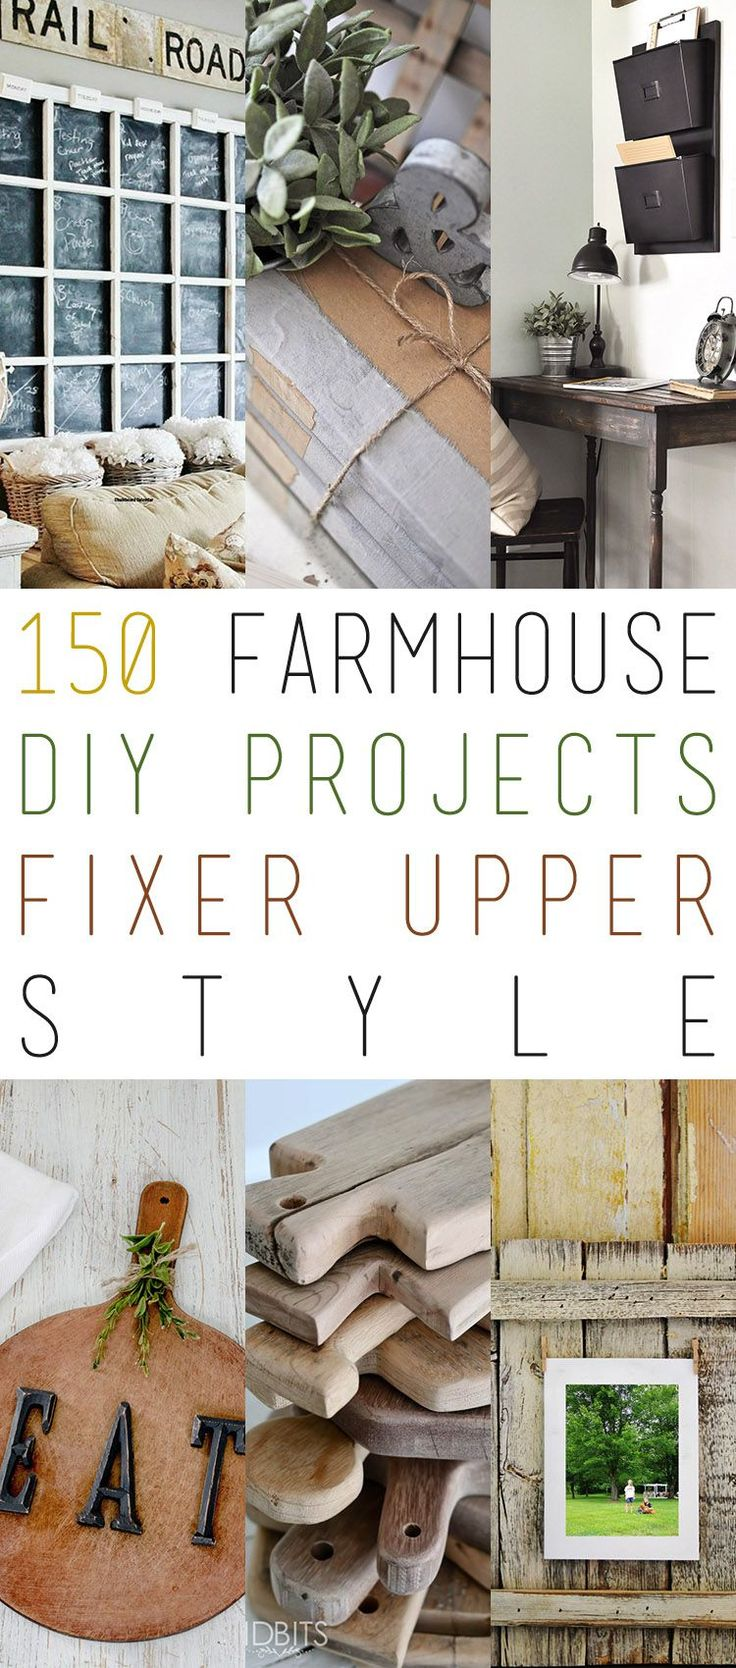 150 Farmhouse DIY Projects Dixer Upper Style!